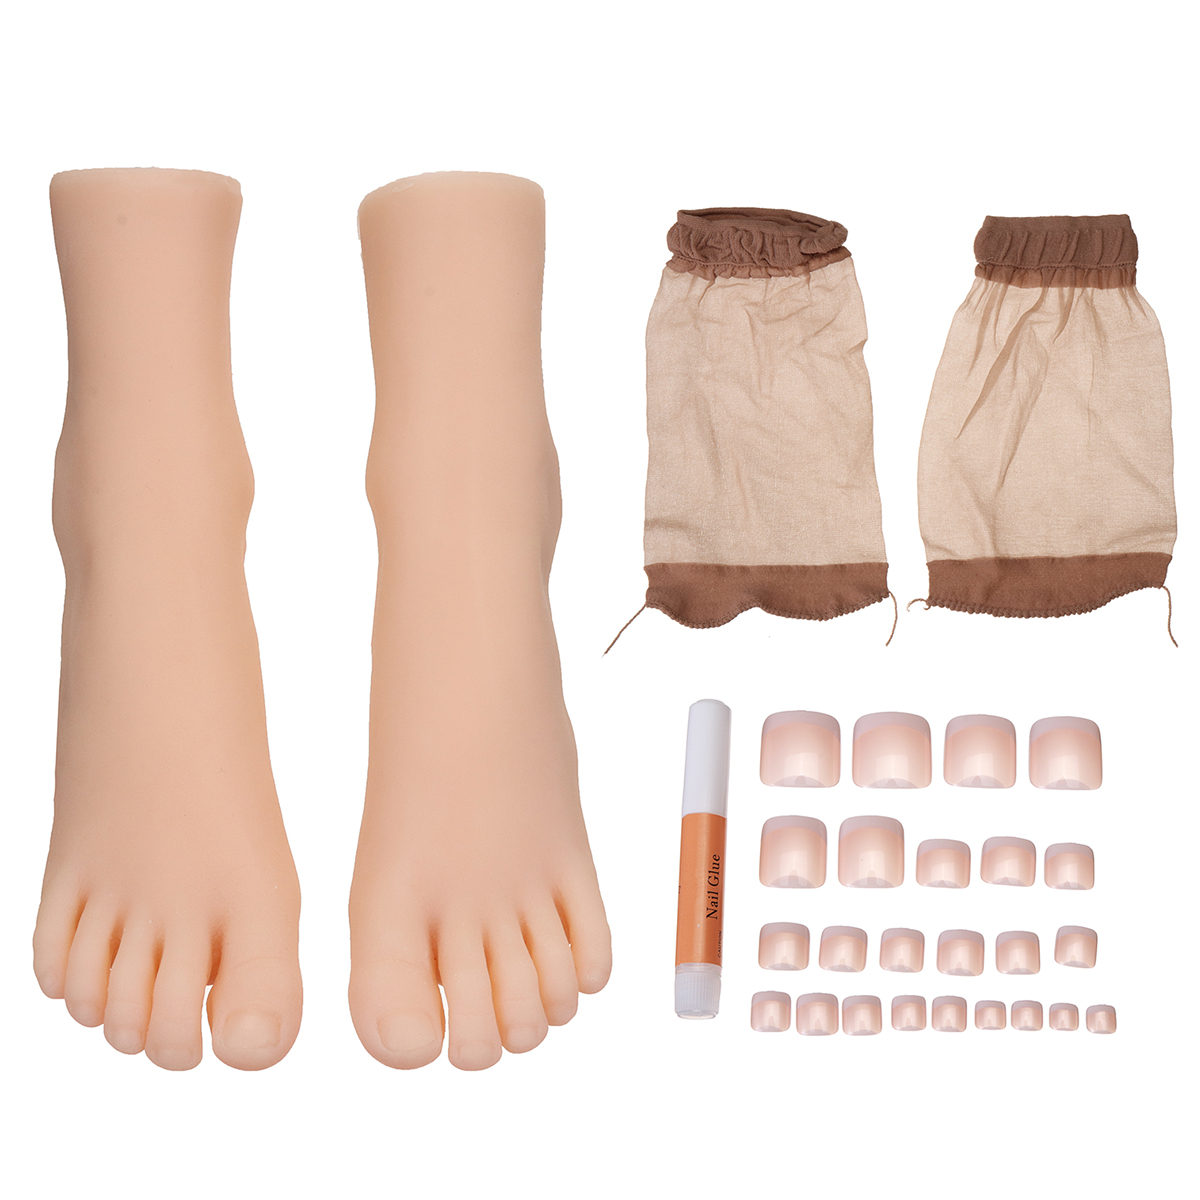 1 Pair 29 Size Female Silicone Girl Feet Mannequin Foot Model Shoes Anckle Chains Display Model Art Sketch Display Sandal Socks